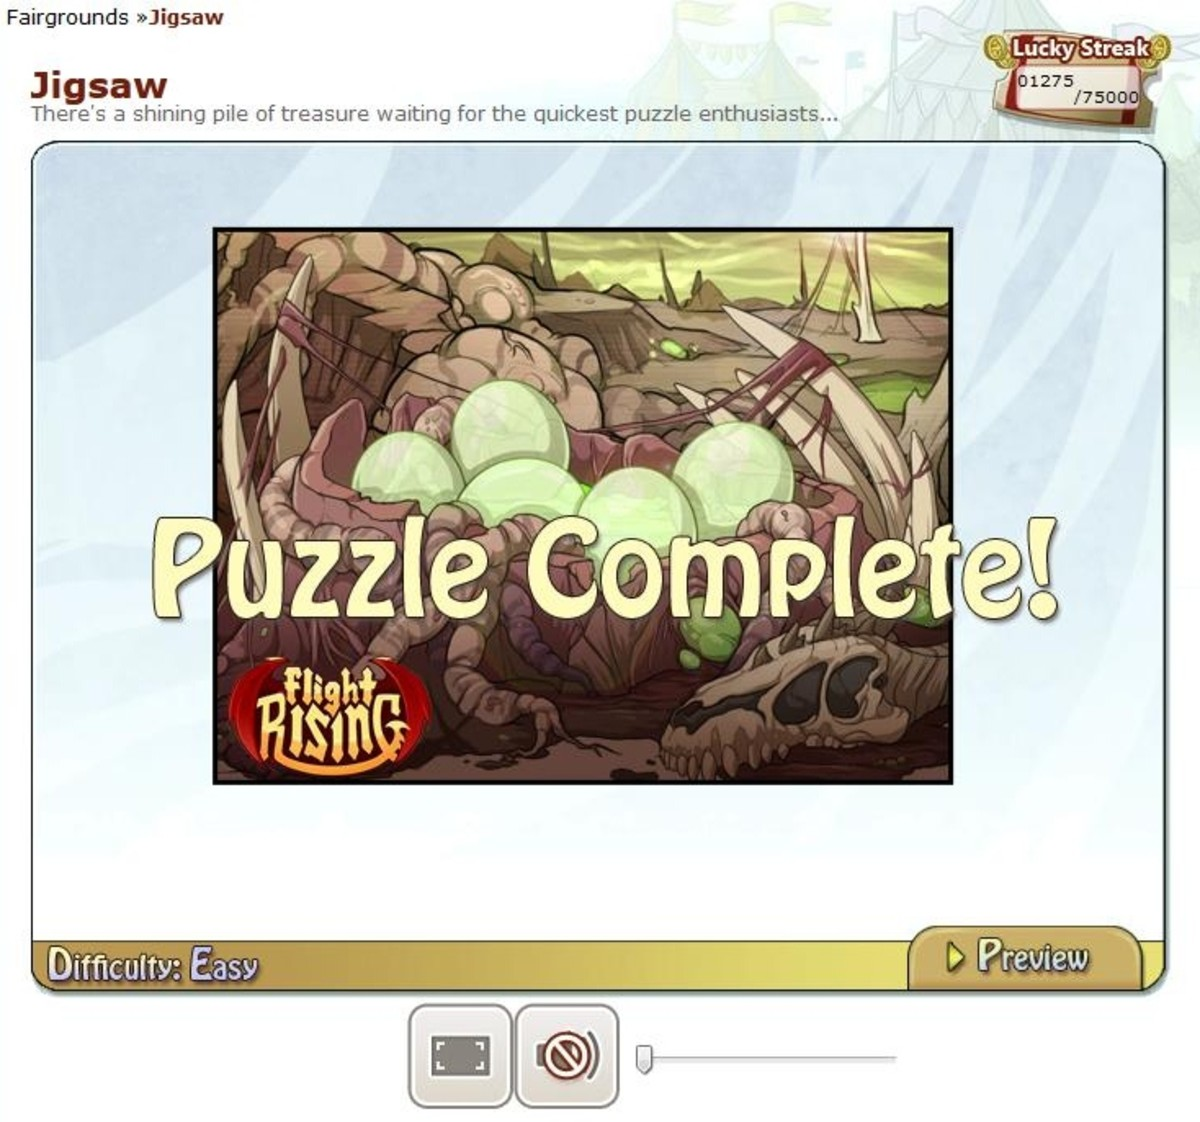 Jigsaw is a fun game for all ages and features gorgeous Flight Rising artwork.